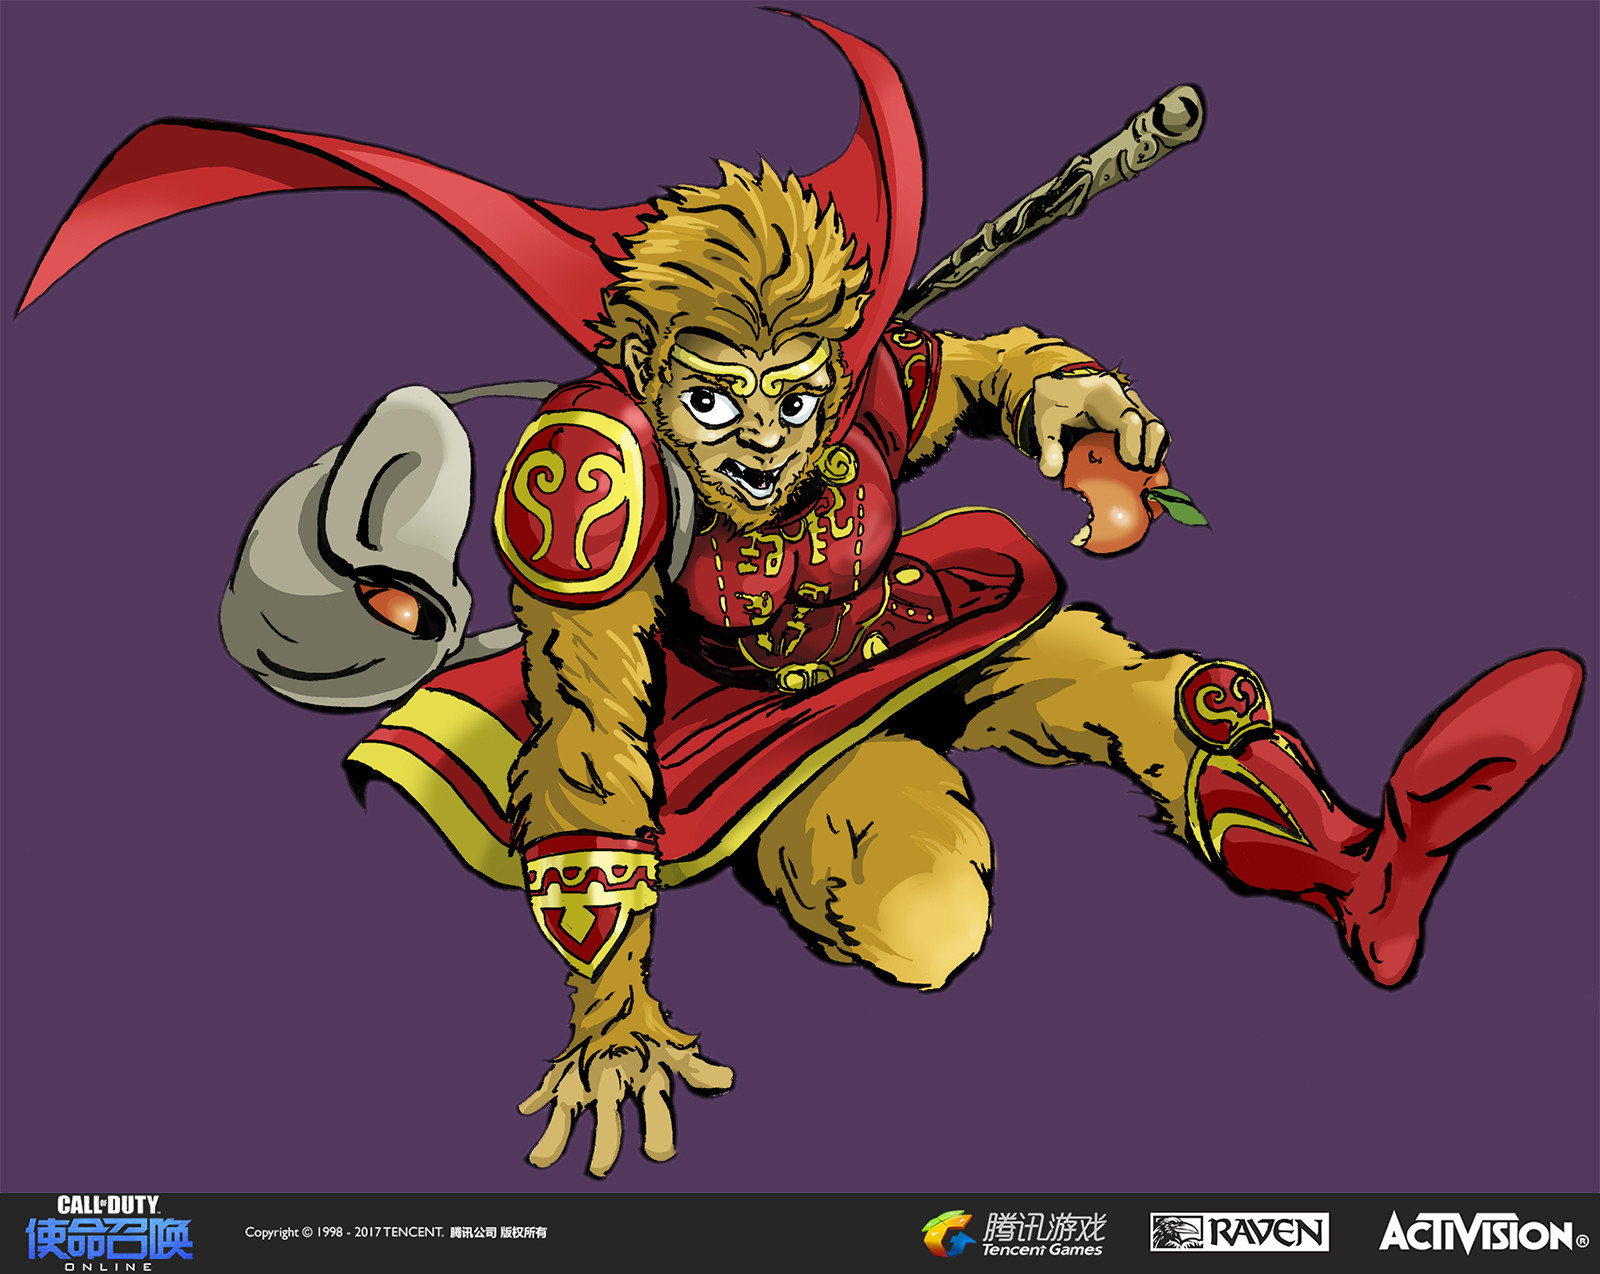 I created this illustration to appear in the remake of Modern Warfare 2's DLC Carnival map. The theme for this year was the Monkey King. I drew the Monkey King in pen and ink and colored with vector in Adobe Illustrator.